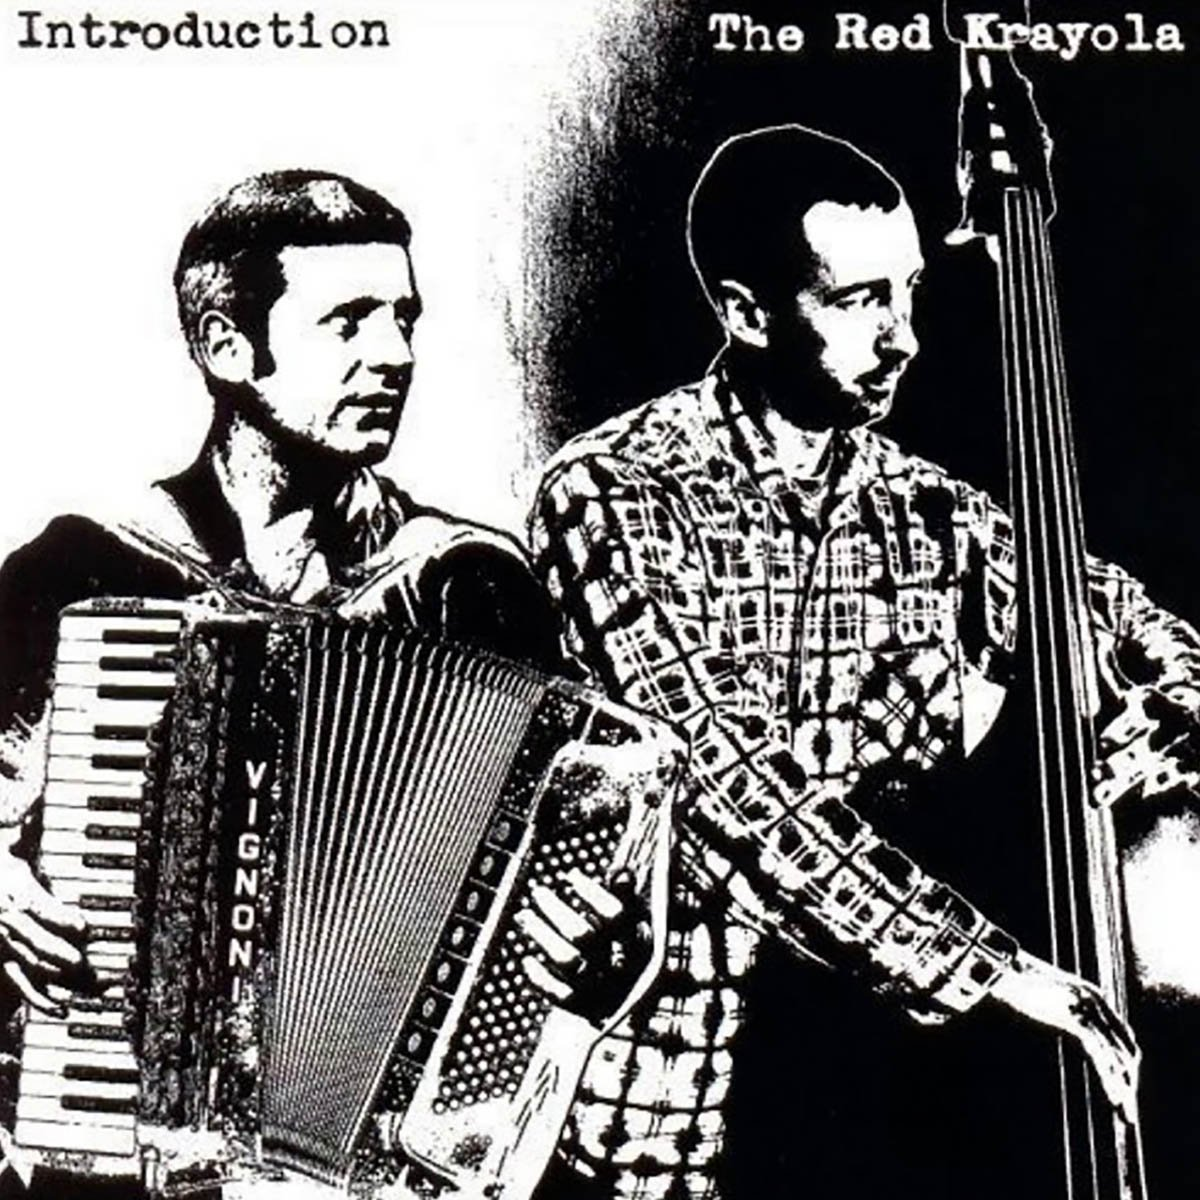 The Red Krayola, Introduction